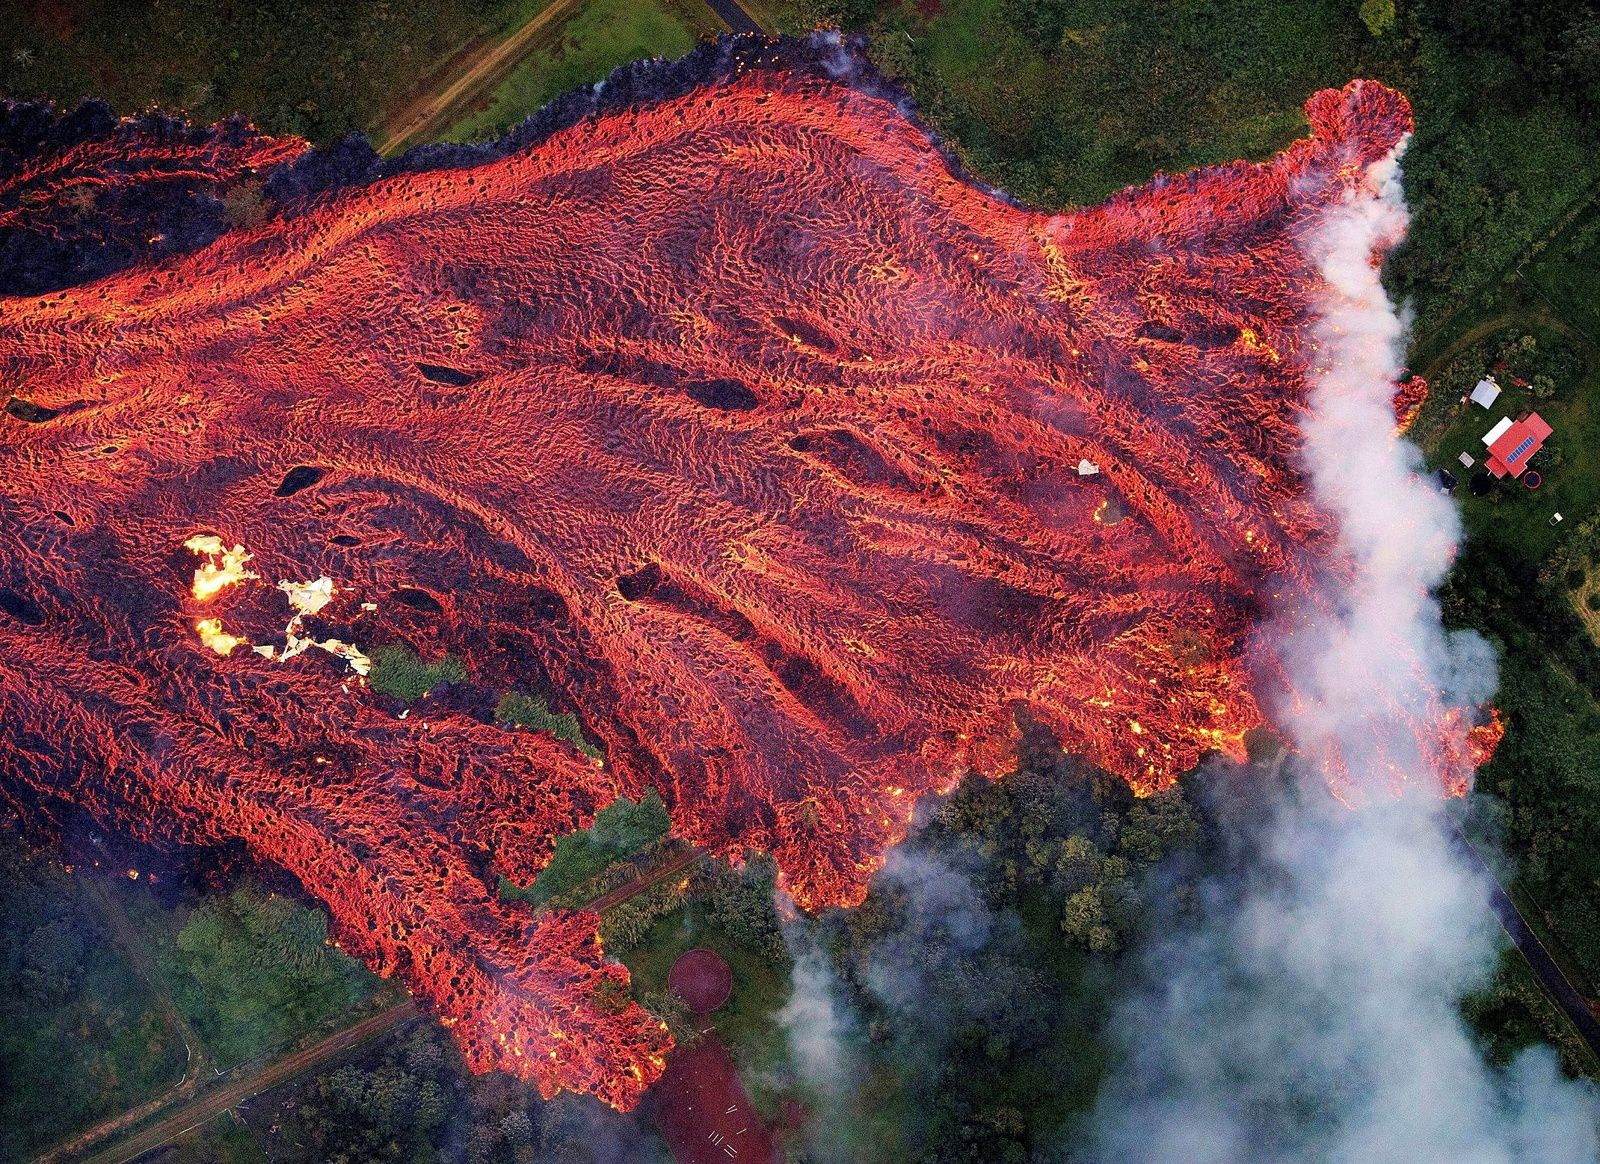 Kilauea zone de rift Est - coulées de lave du 19 mai 2018 - photo Bruce Omori - Paradise Helicopters/EPA-EFE/Shutterstock - in Time Top 100 photos of the year 2018